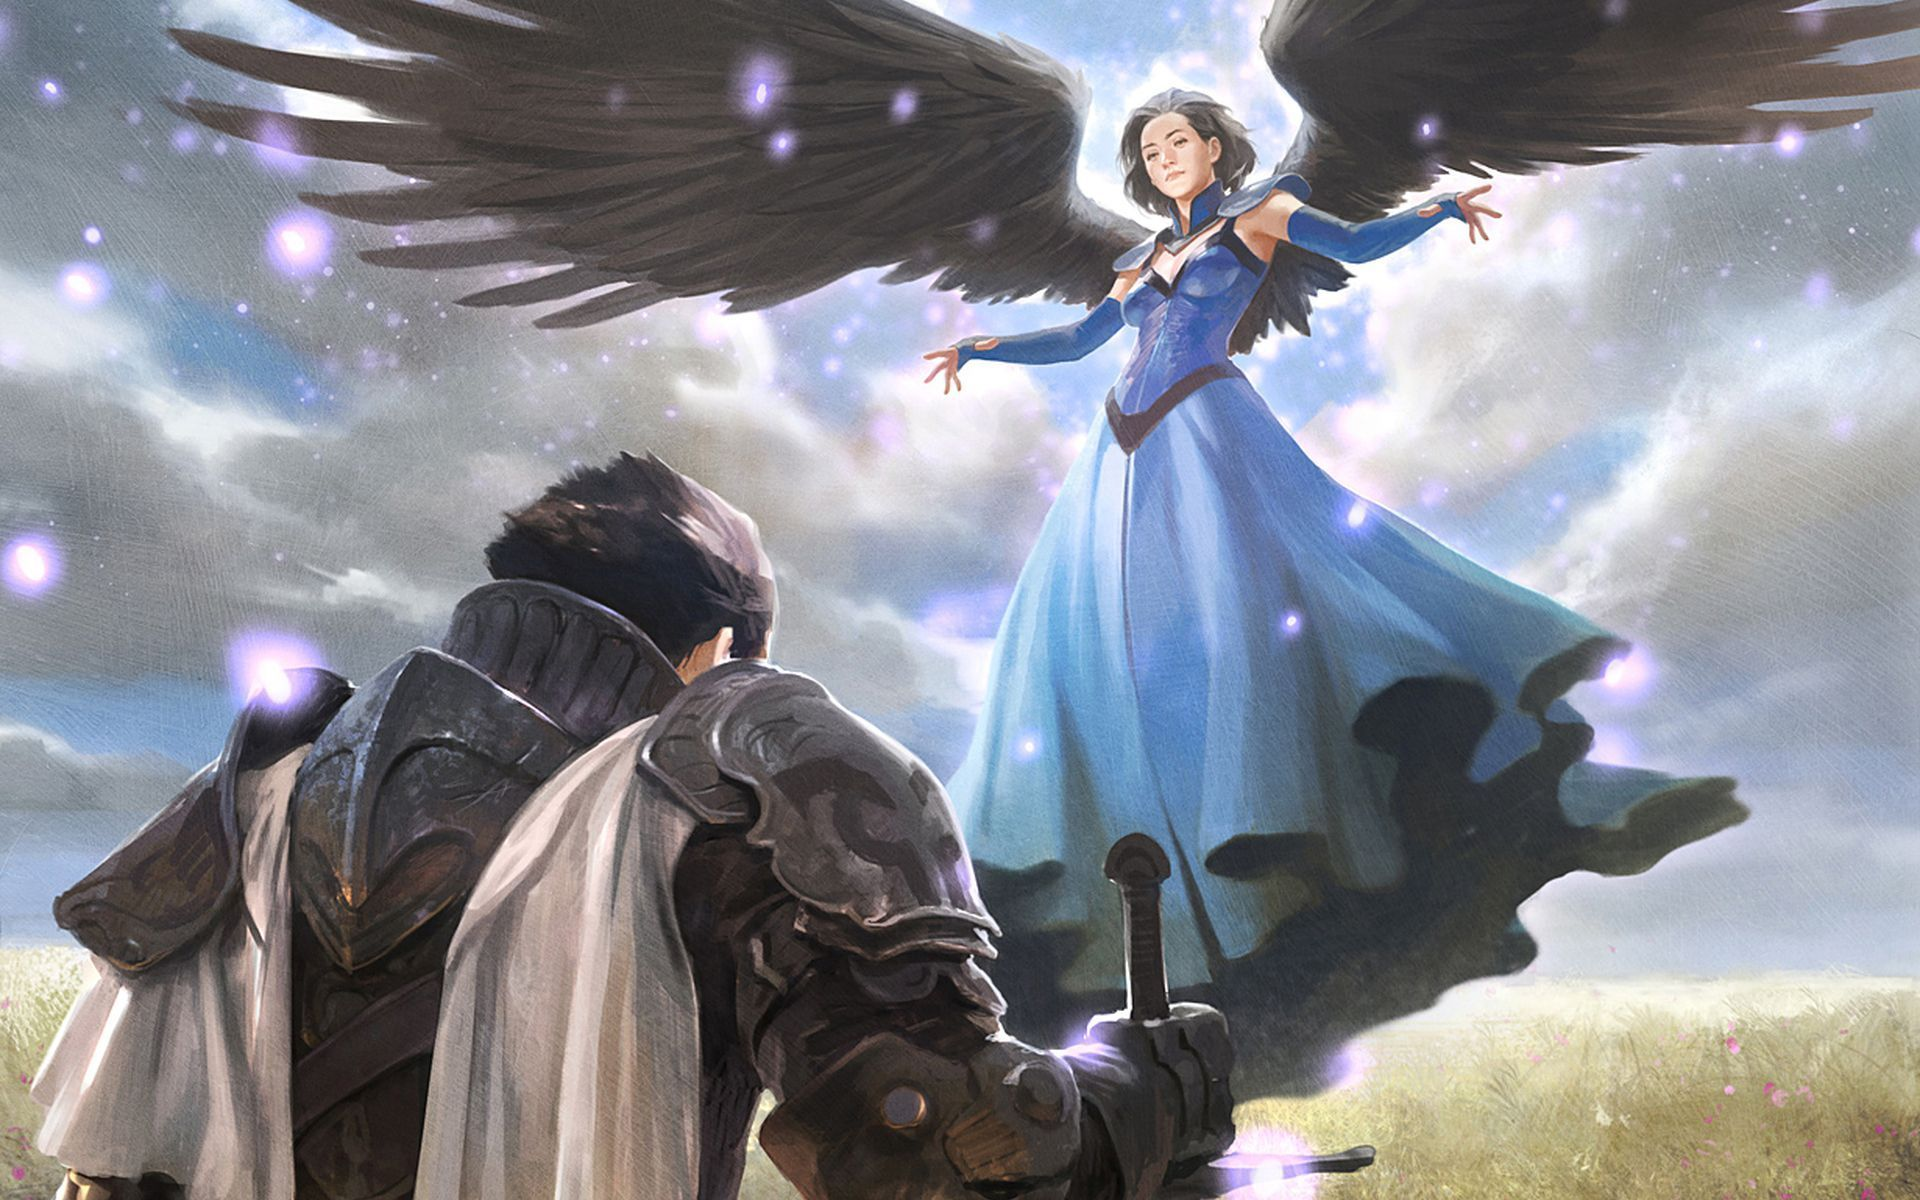 Magic The Gathering Hd Wallpaper Background Image 1920x1200